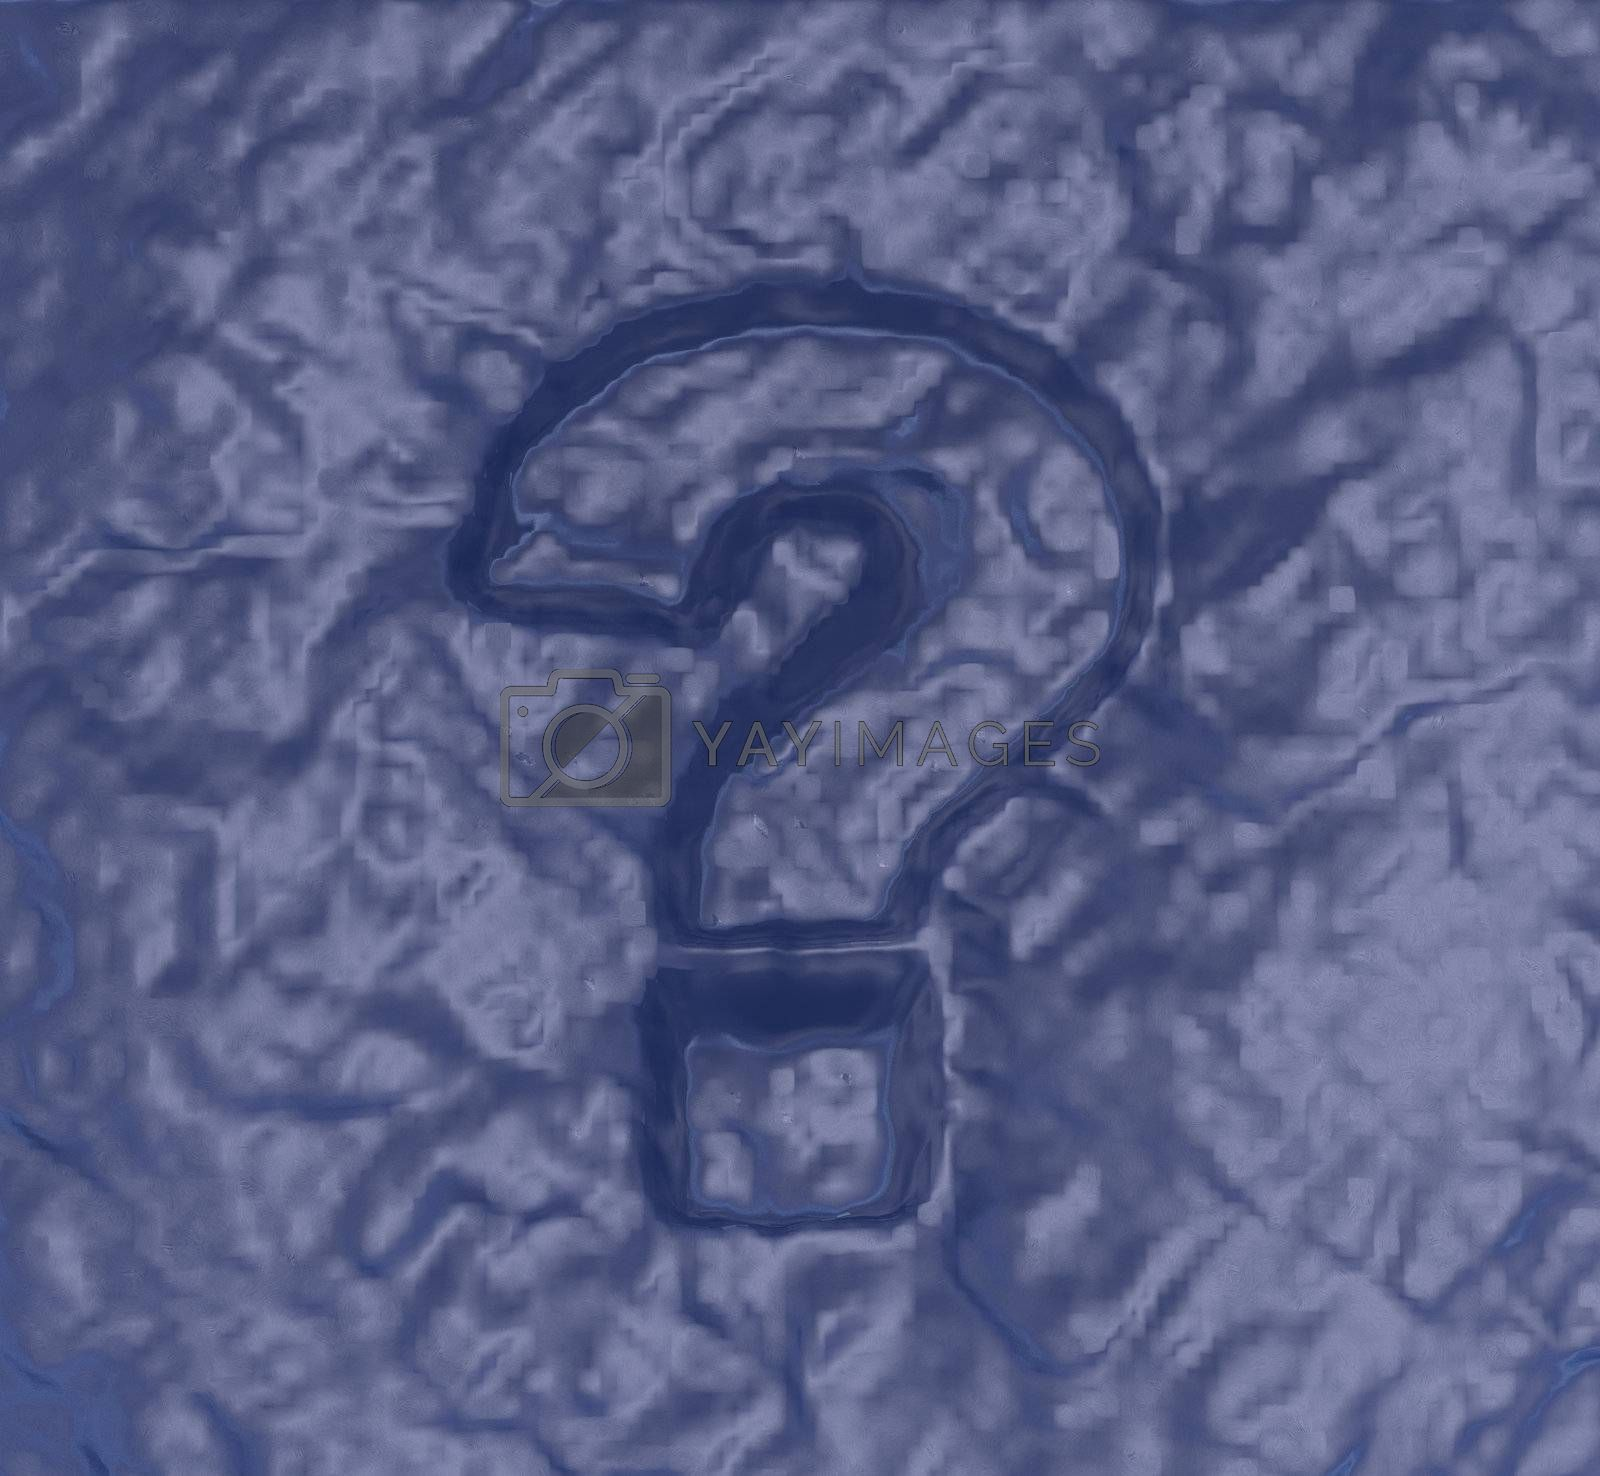 Royalty free image of question mark by drizzd